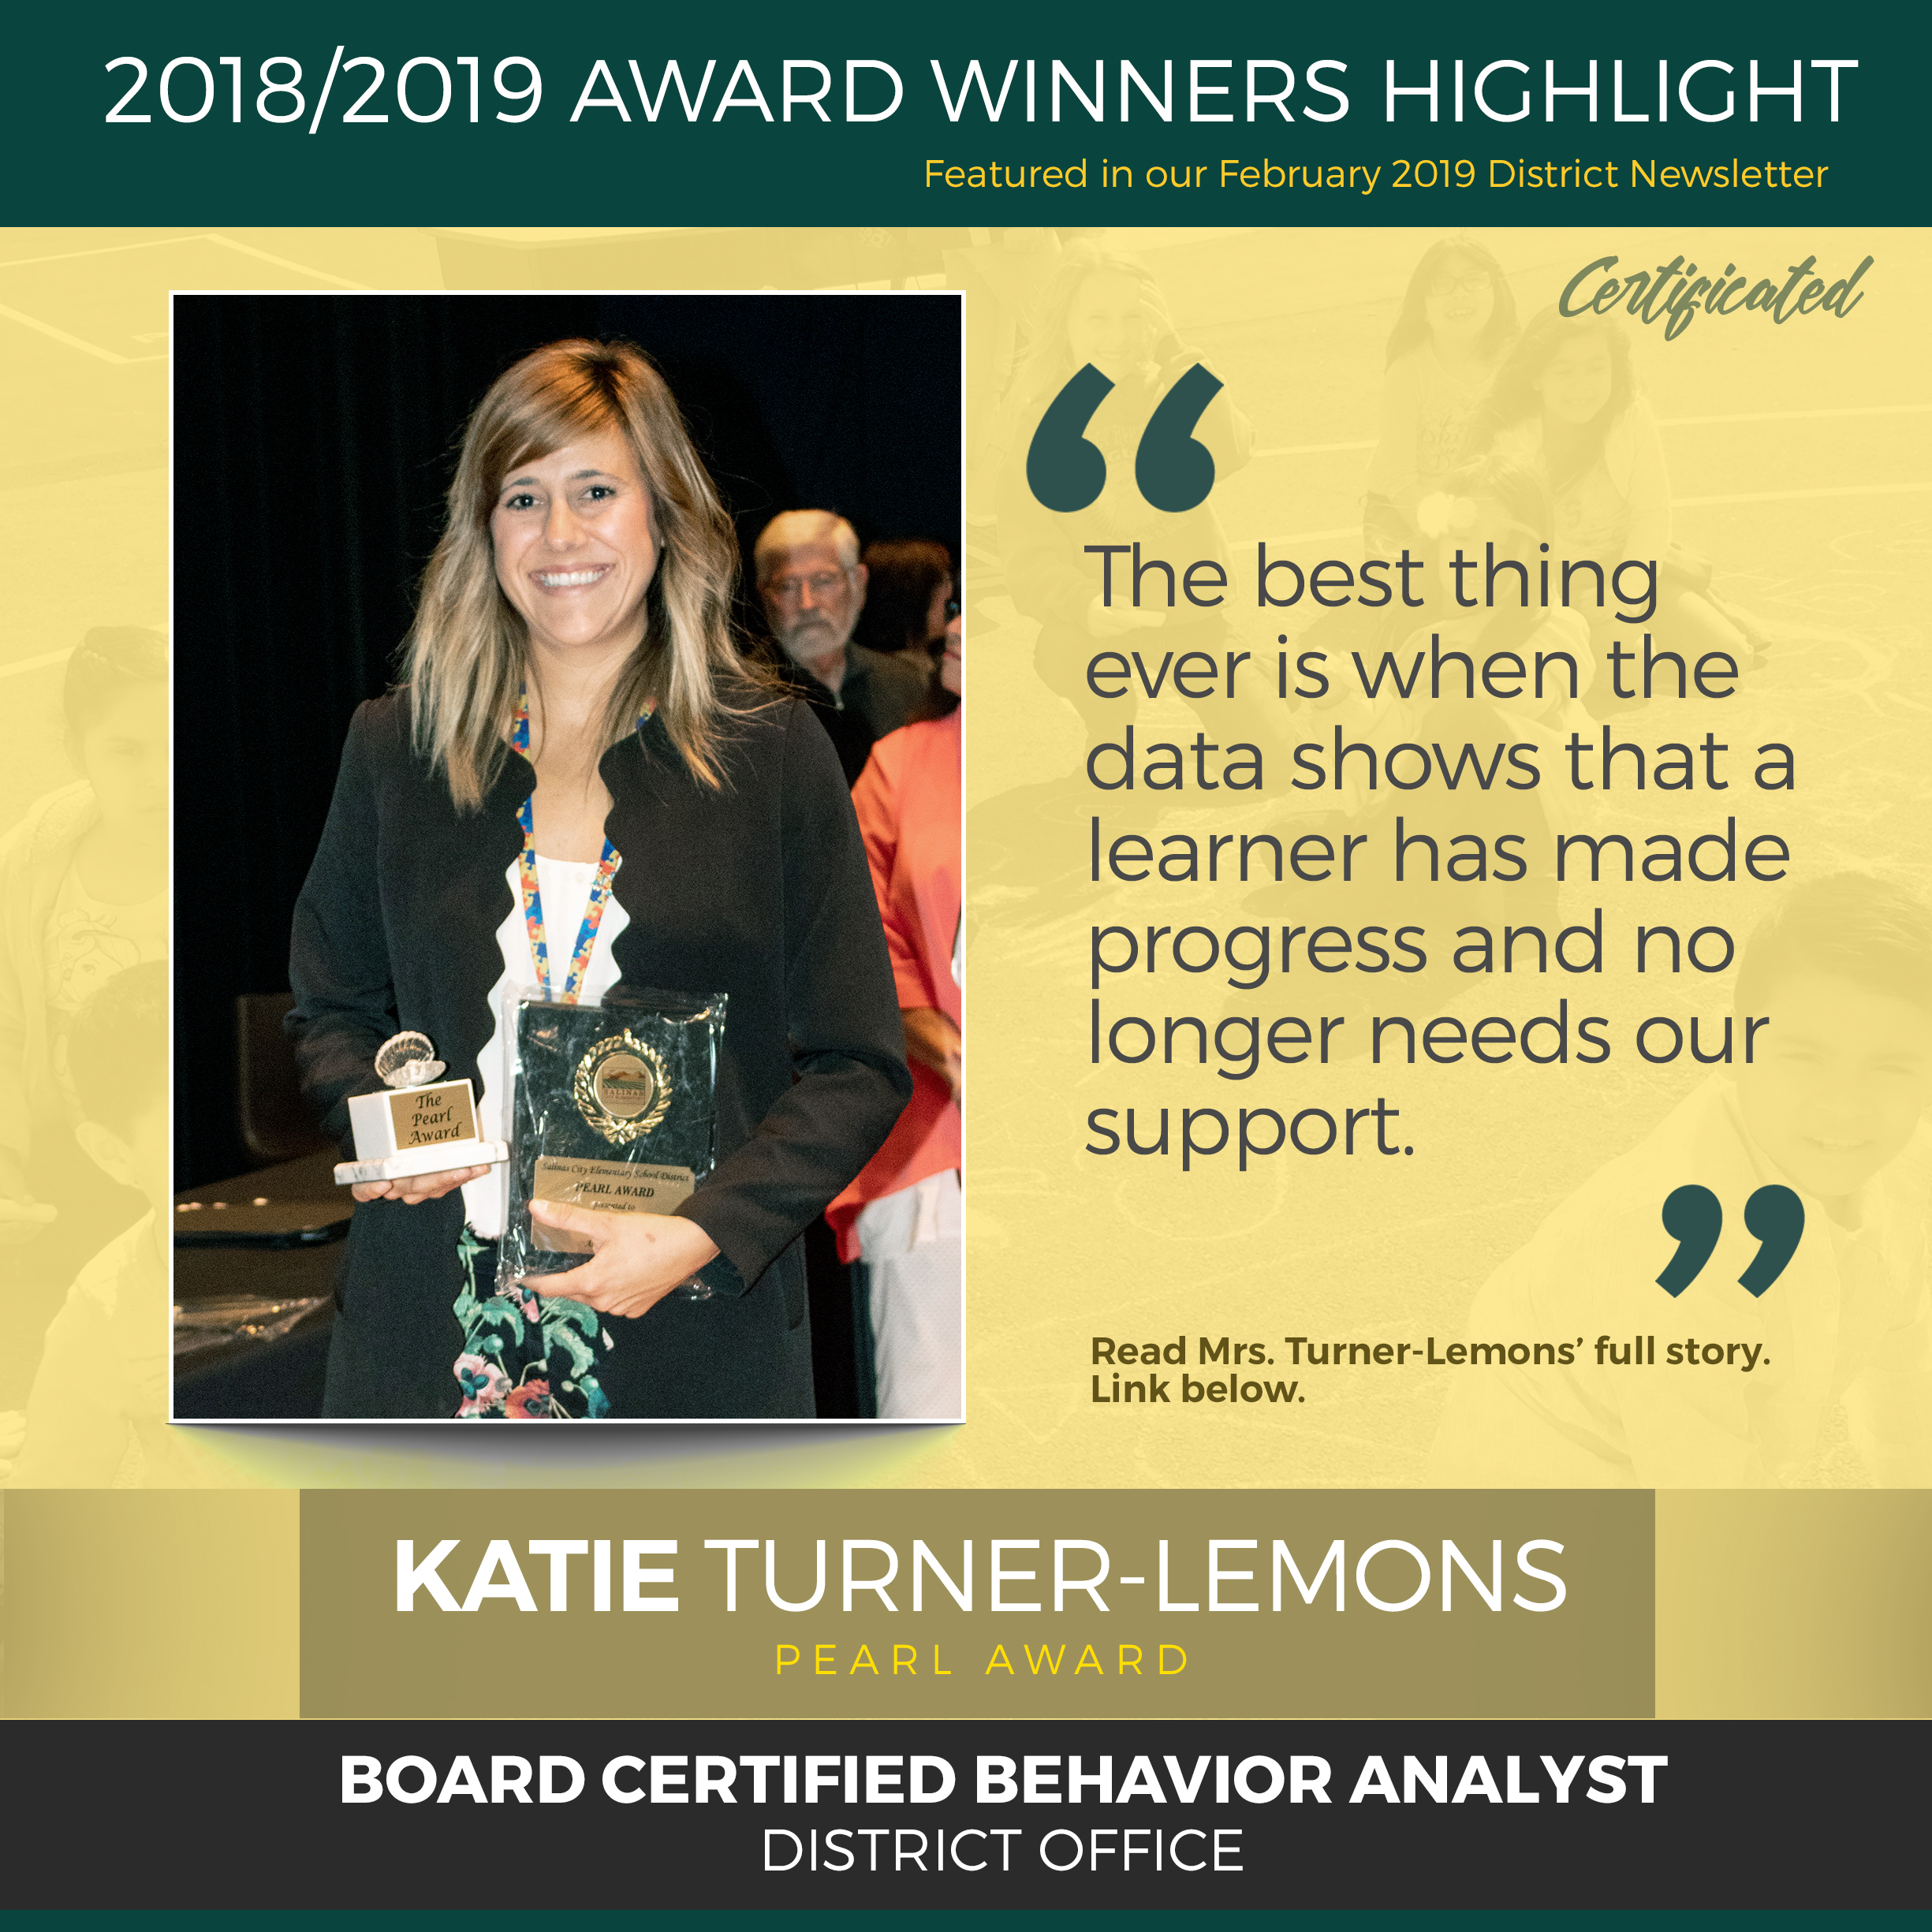 Katie_GI_GOLD_Award Winner Hightlight_Social Ad.jpg